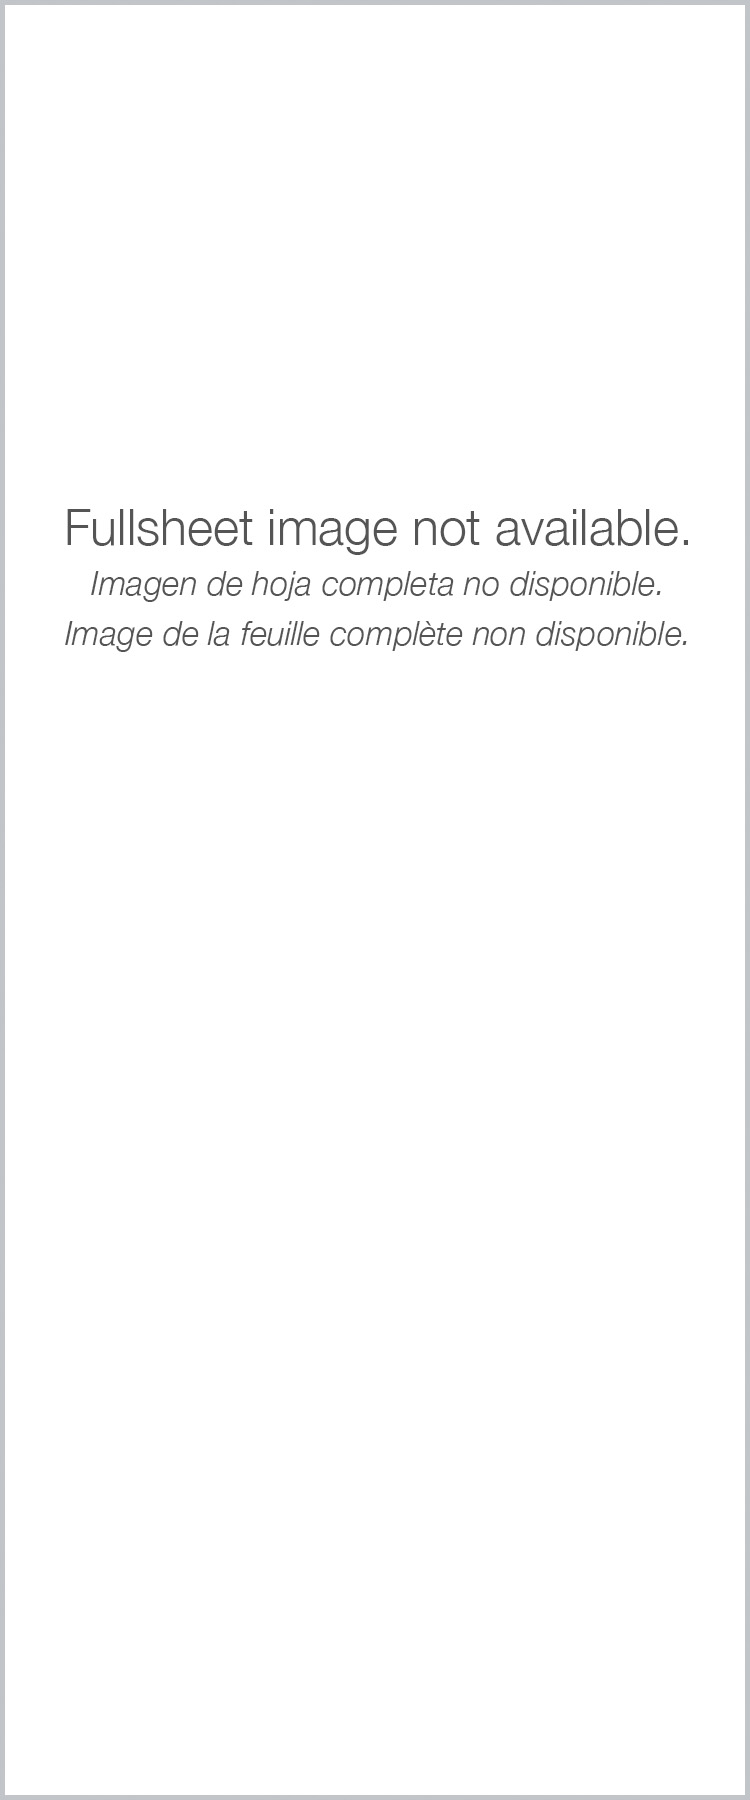 H6064 fullsheet is not currently available